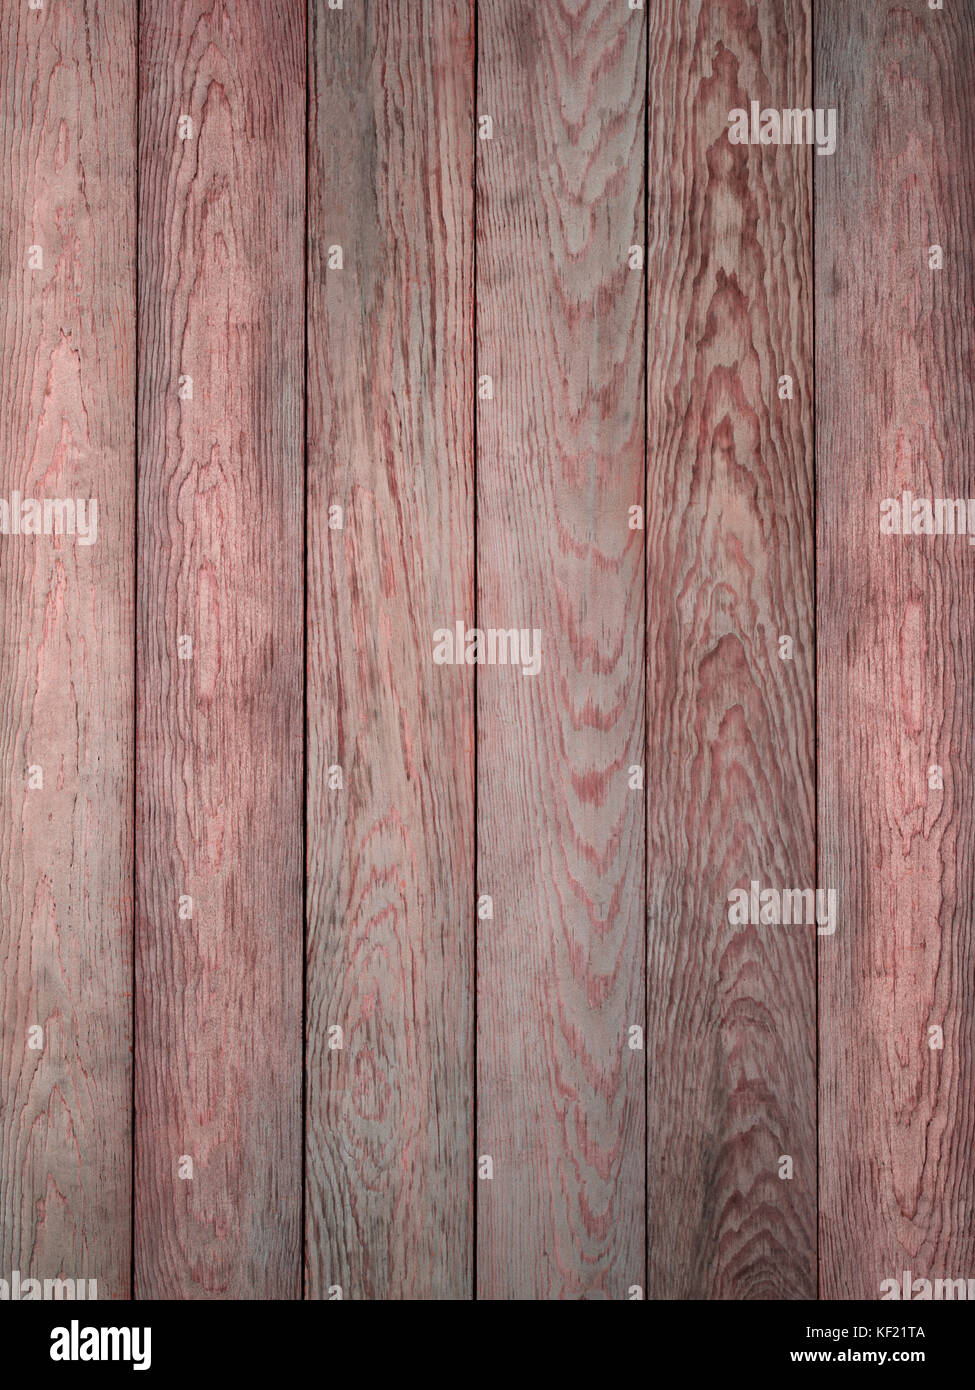 Rustic red gray weathered barn wood board background showing rich grain - Stock Image